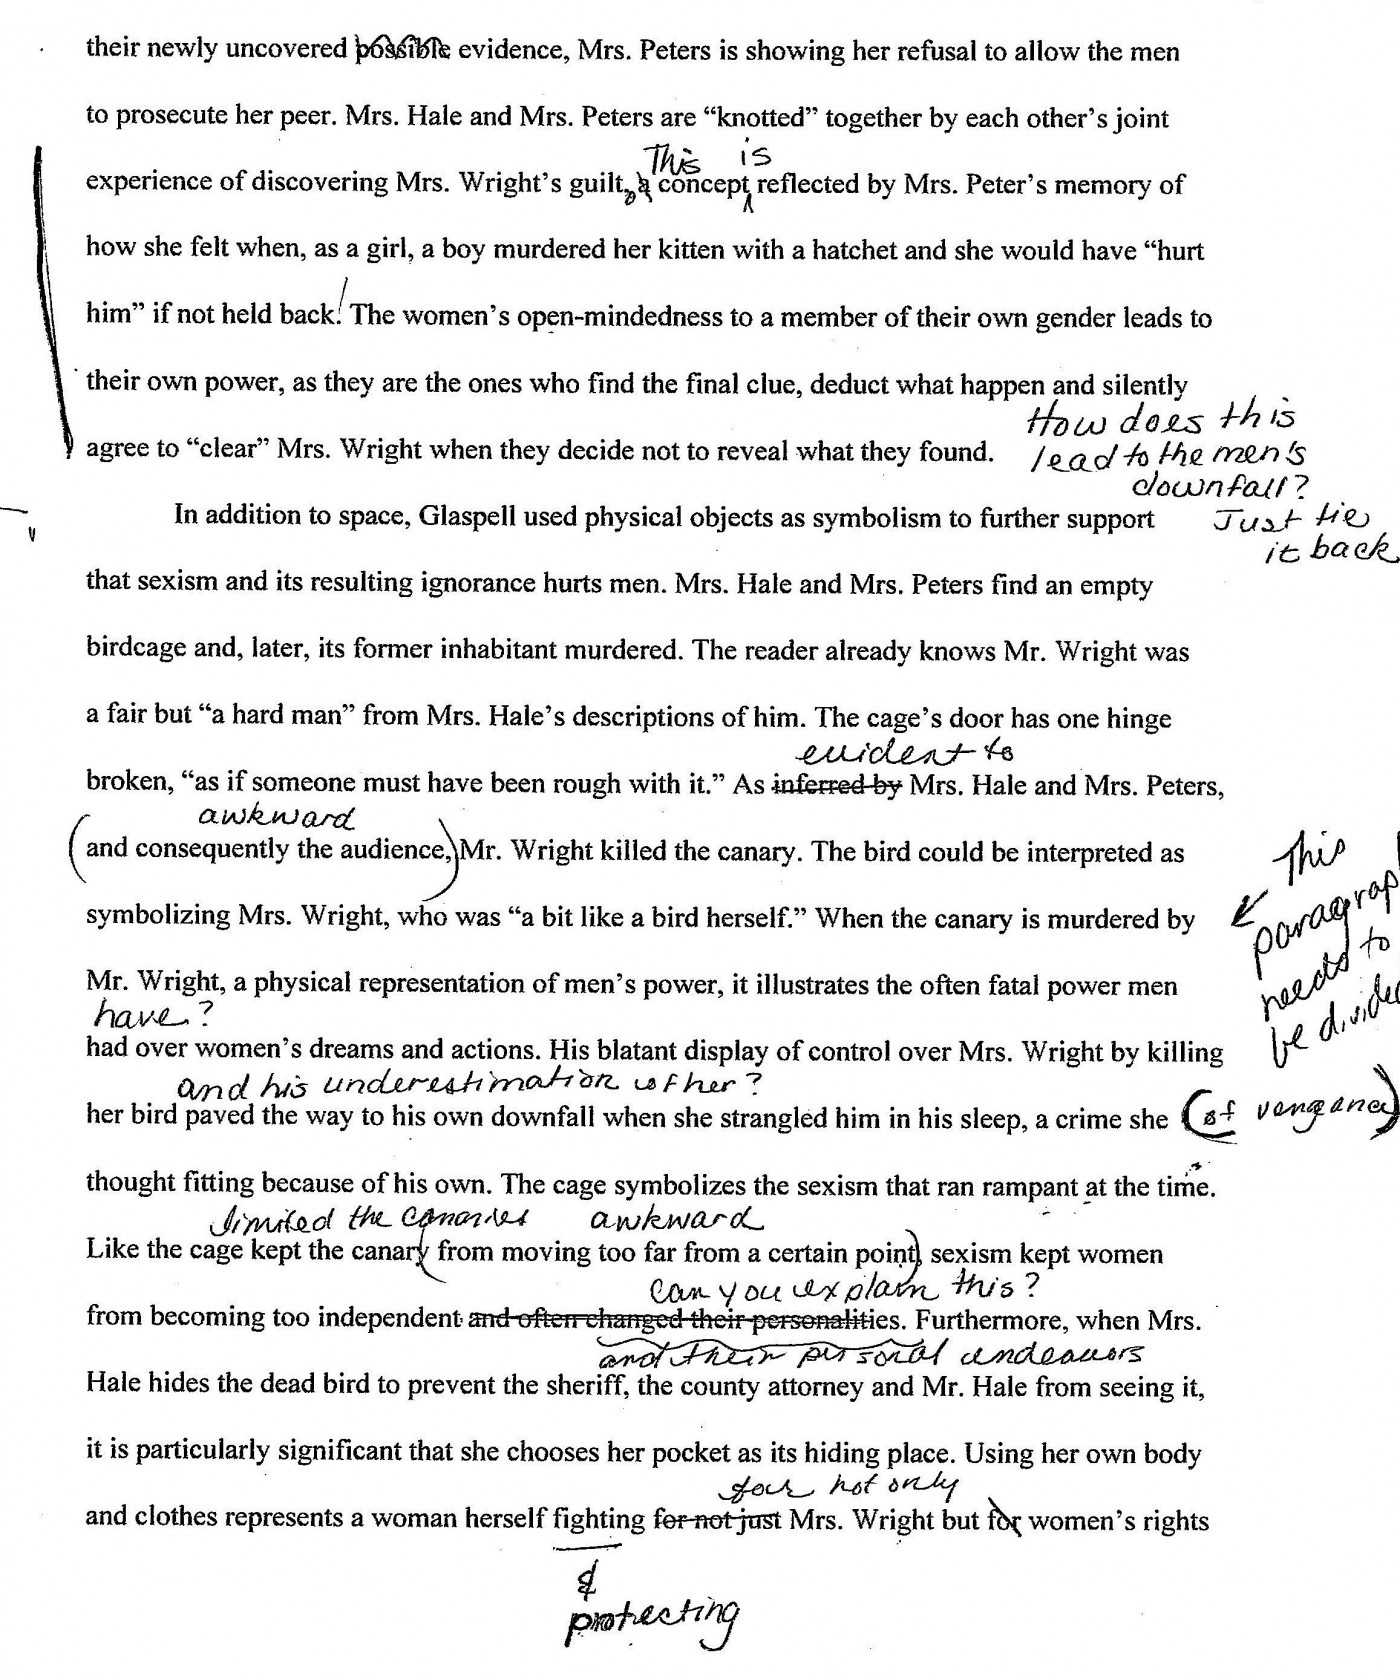 002 Trifles Essay Example Formidable Conclusion Prompts 1400